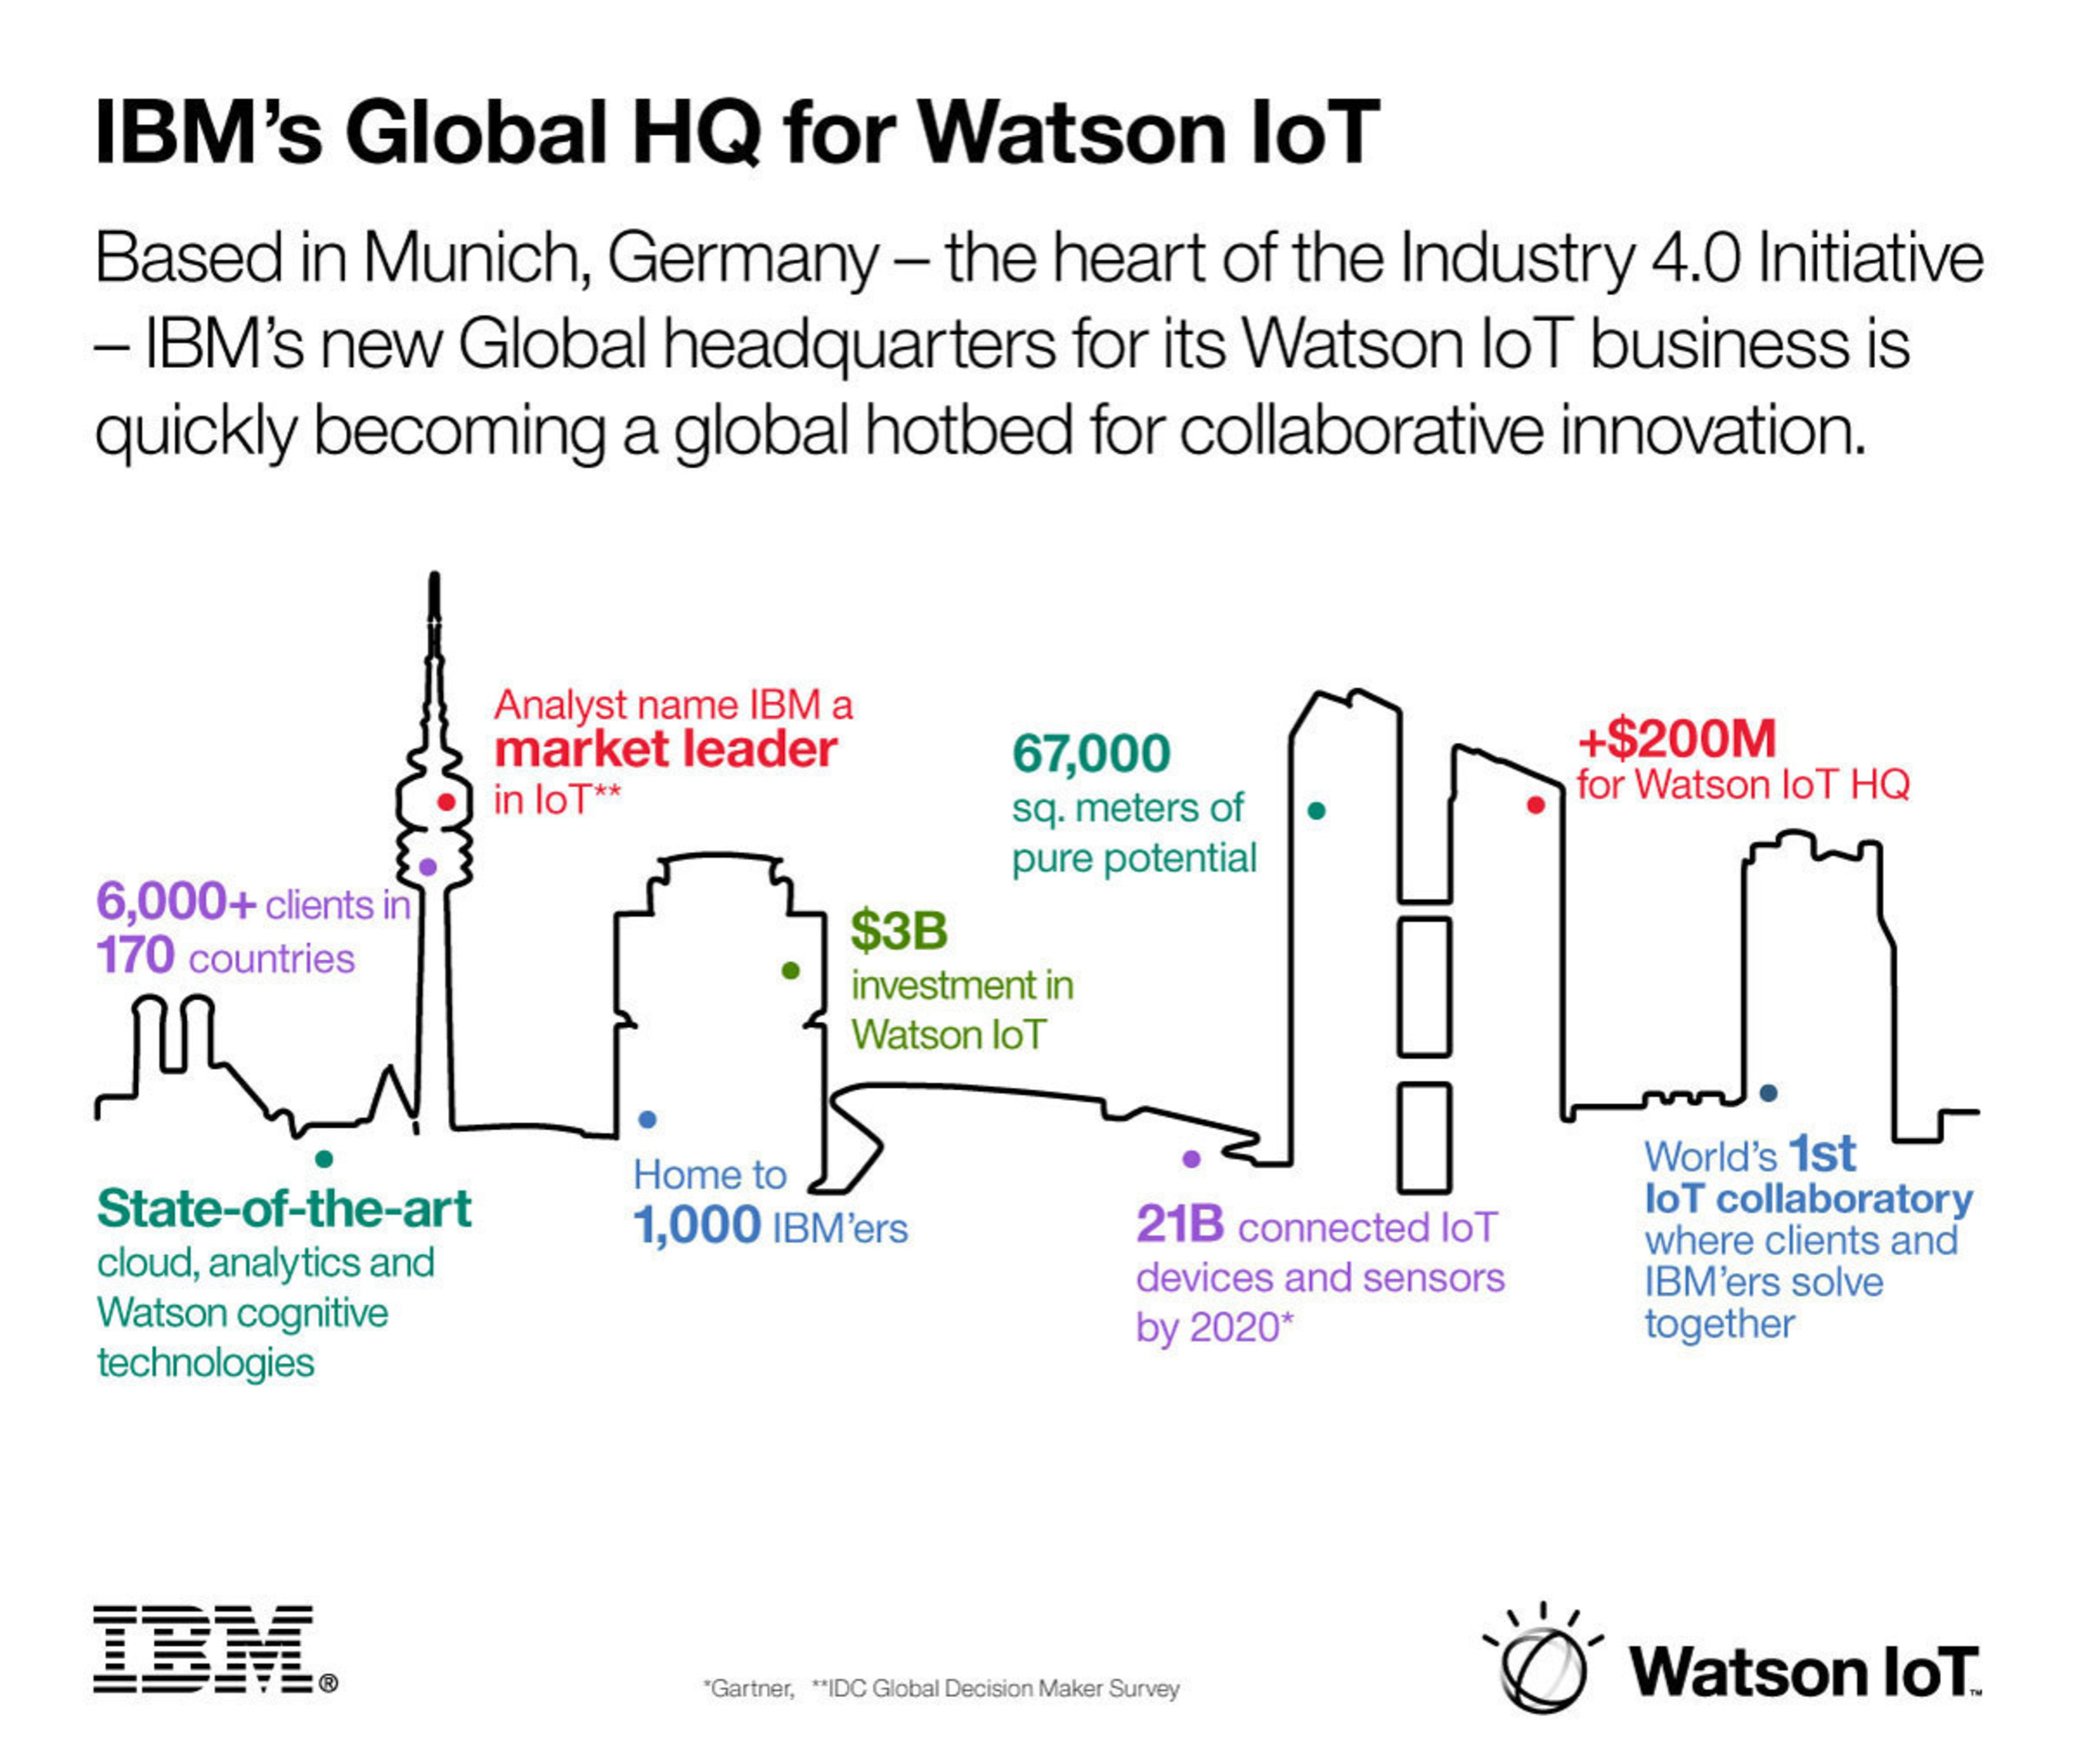 Based in Munich, Germany - the heart of the Industry 4.0 Initiative - IBM's new Global headquarters for its Watson IoT business is quickly becoming a global hotbed for collaborative innovation